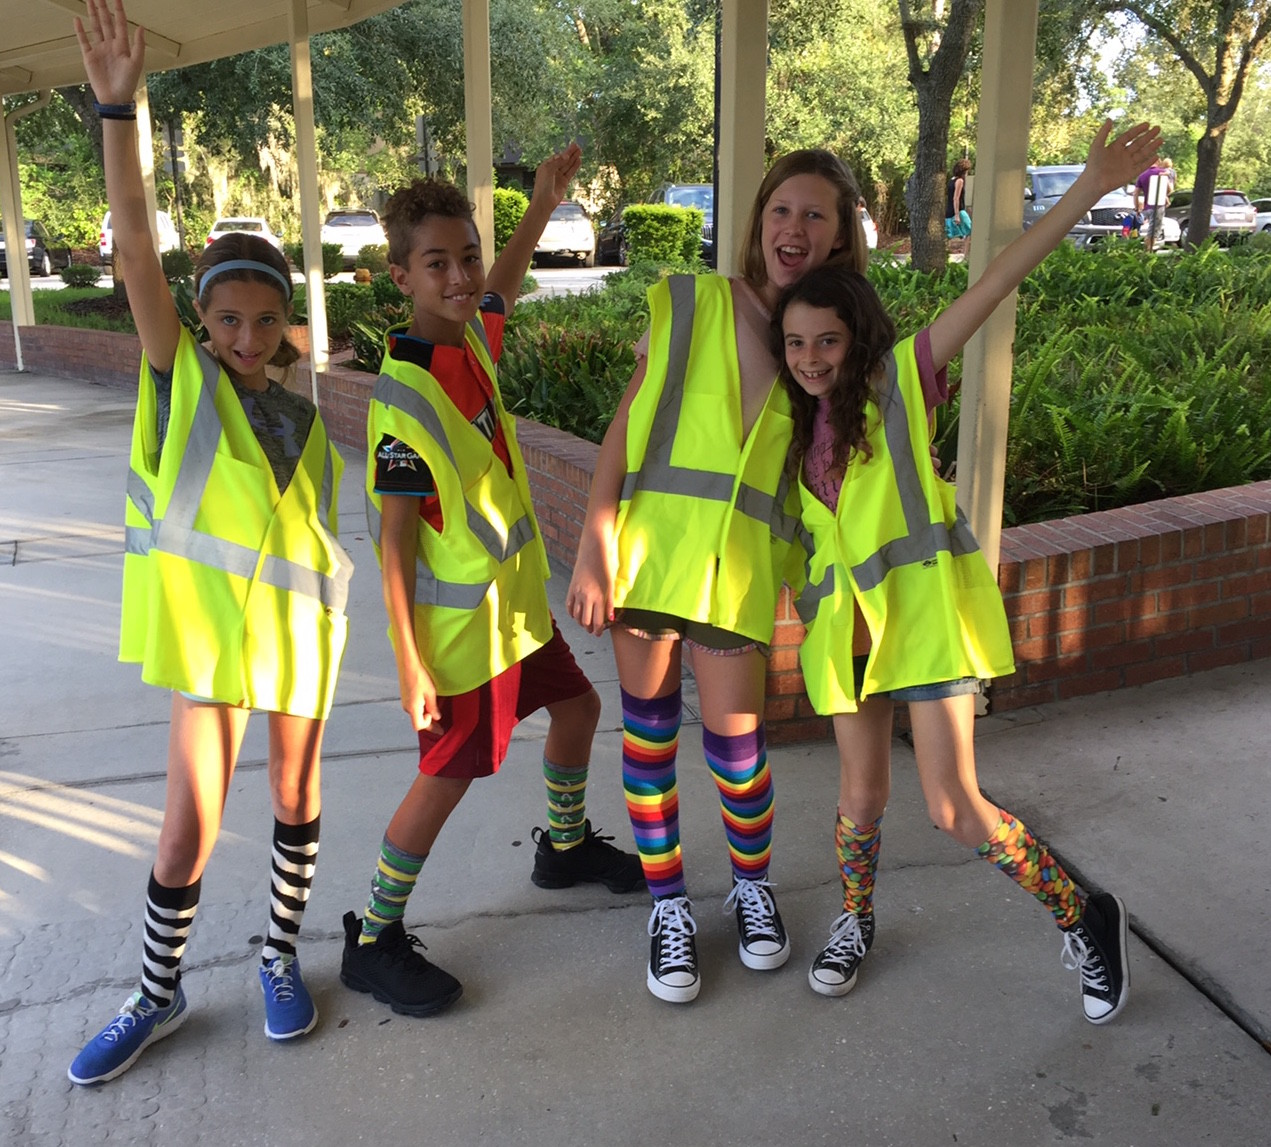 "Jacksonville Country Day School (JCDS) students, including Ponte Vedra Beach residents Ellie Goodfriend (far left) and Izzy Davis (far right), ""break"" the school's dress code Sept. 1 to raise money for those impacted by Hurricane Harvey. Students were asked to donate $1 for the privilege of breaking the dress code. Overall, students raised $2,218, which will be donated to the United Way of Greater Houston."